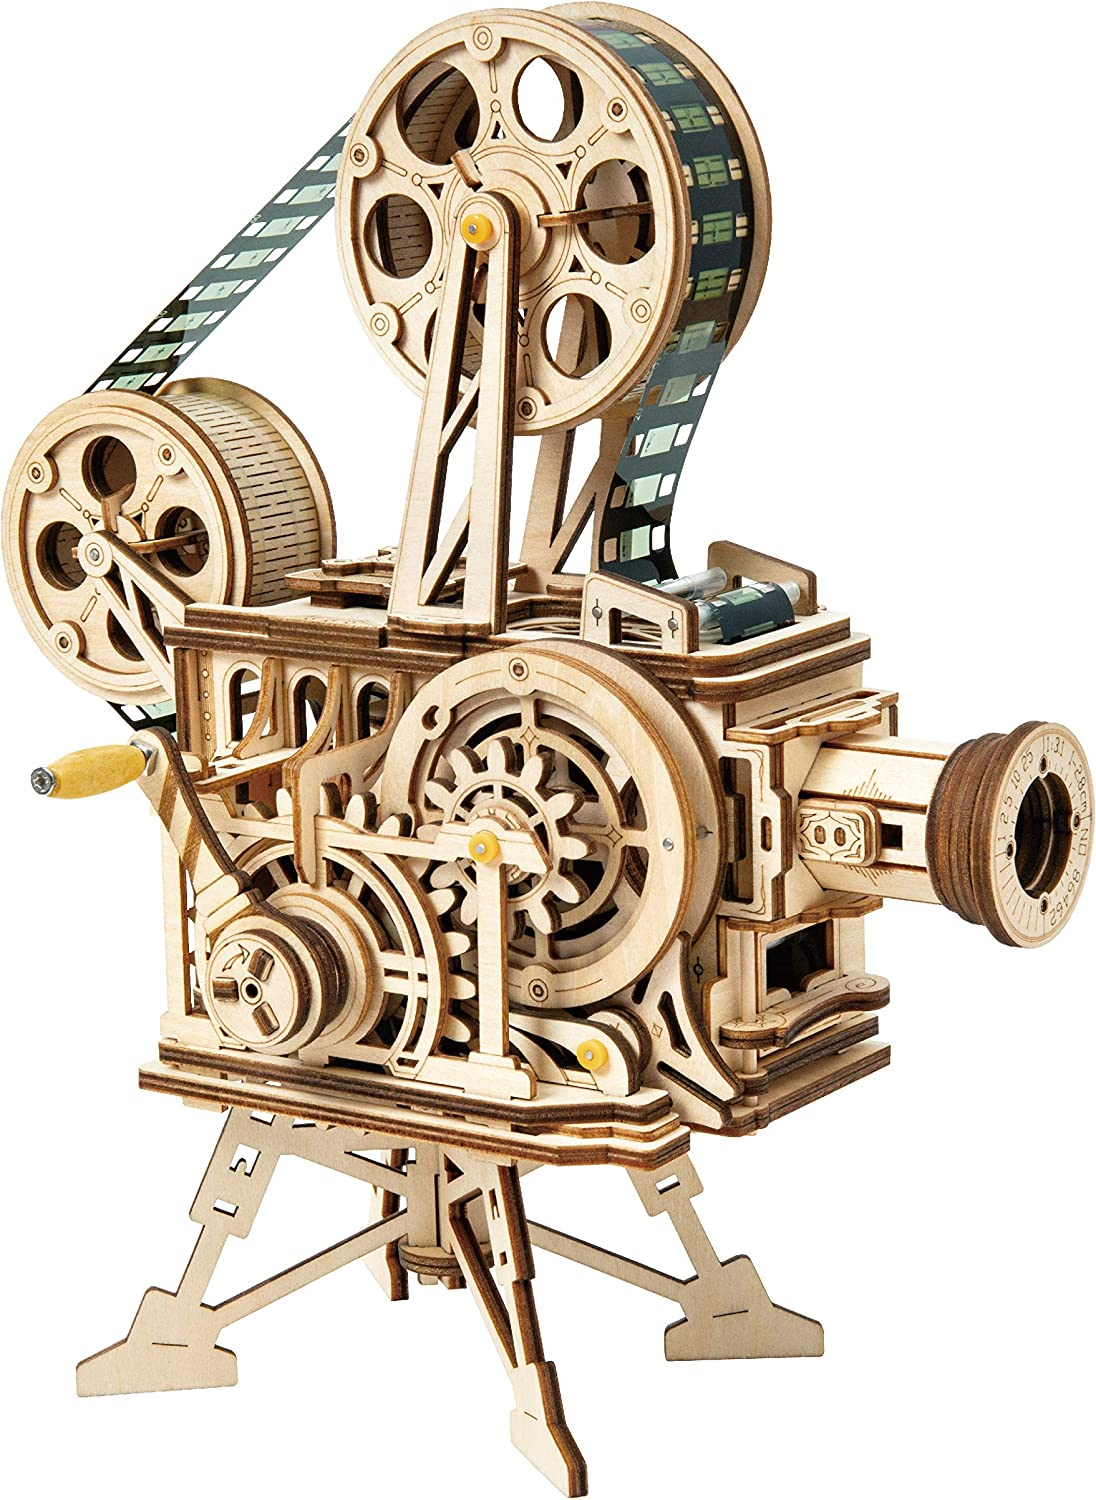 Rowood 3D Wooden Puzzle Ranking TOP7 Toy for OFFicial Projector Handheld Adults Film